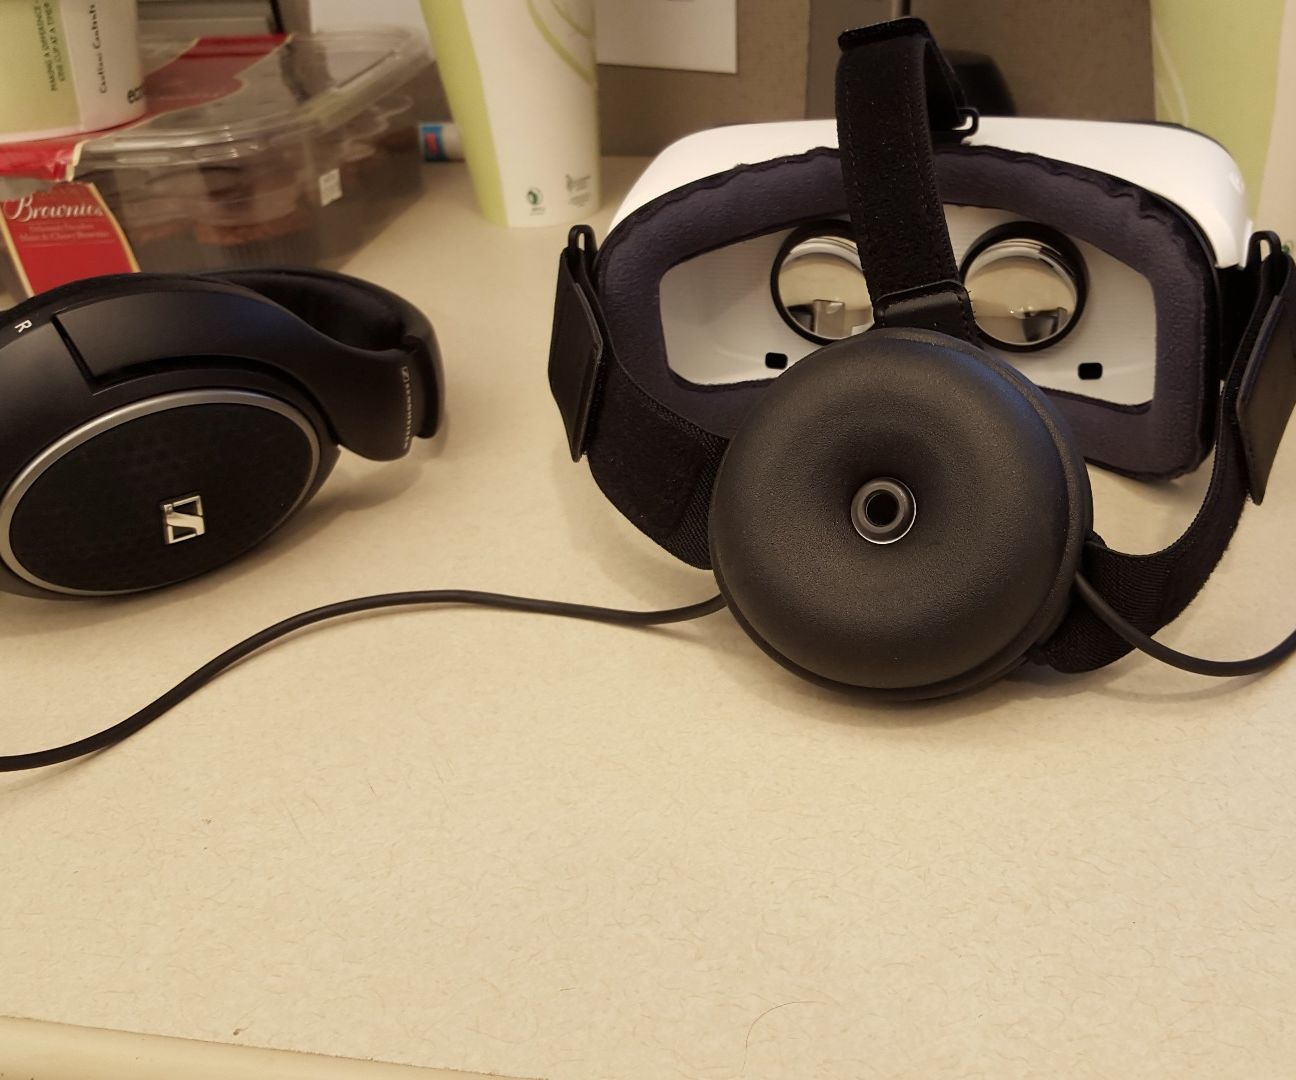 Samsung Gear VR - Head-mounted Cable Management